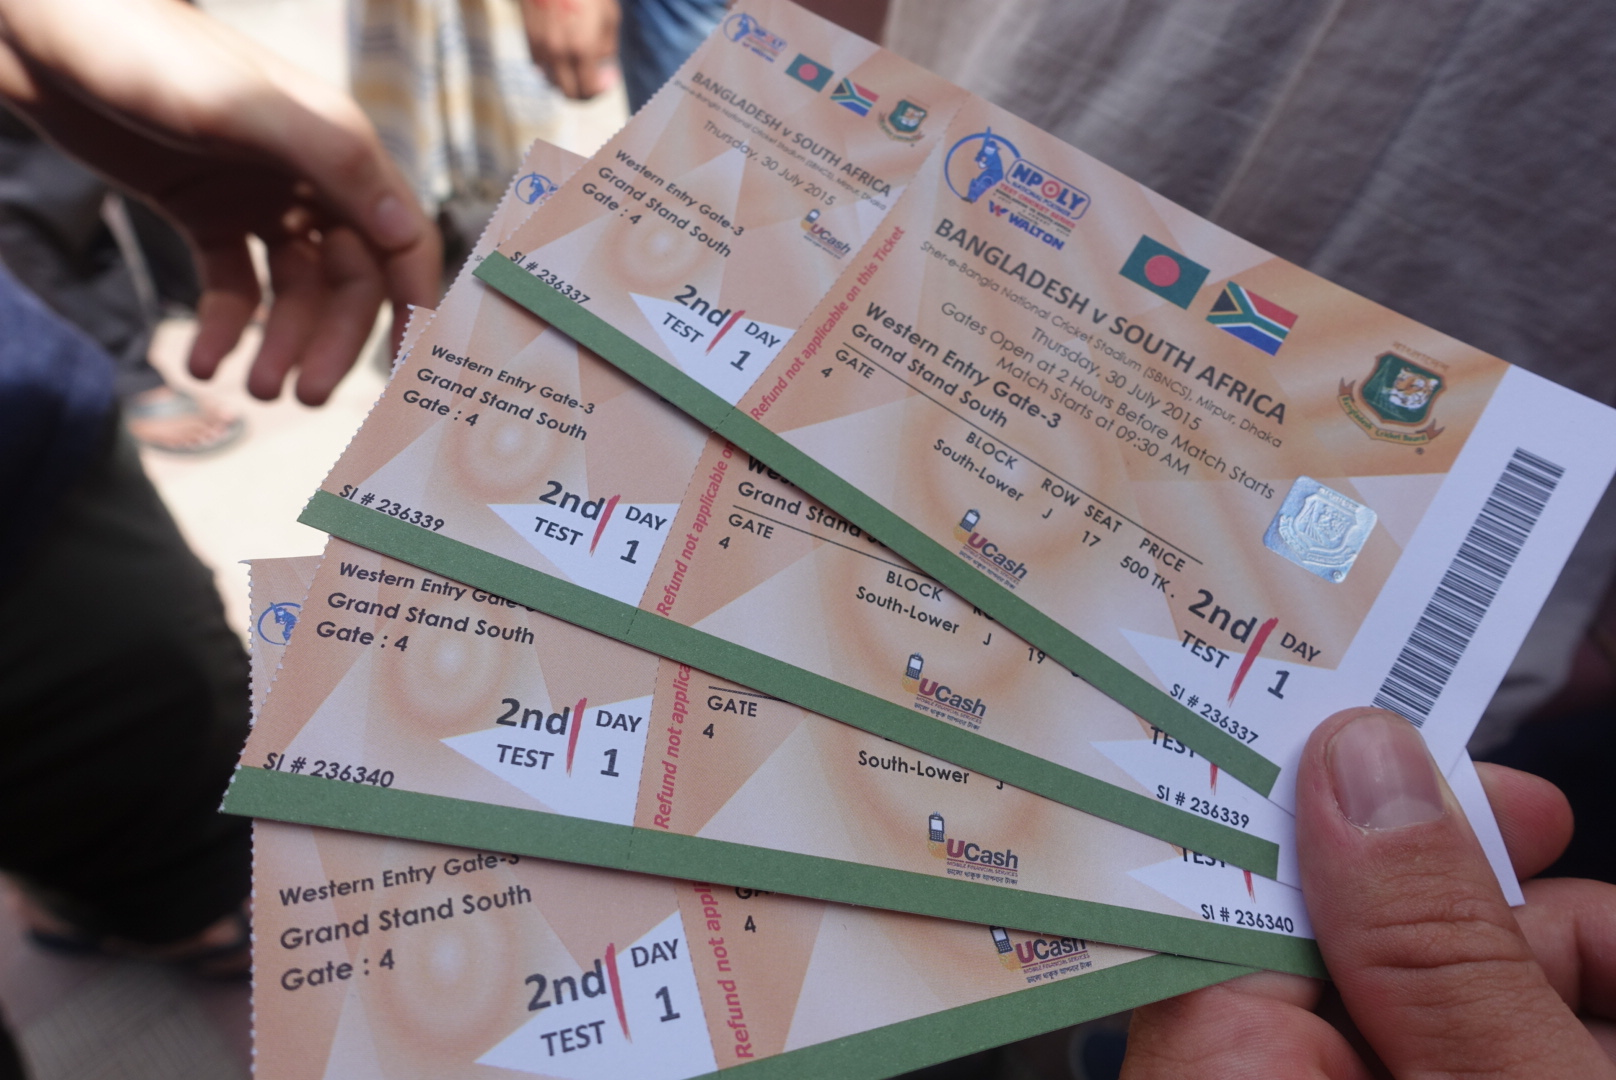 VIP Tickets to the Bangladesh vs. South Africa cricket match